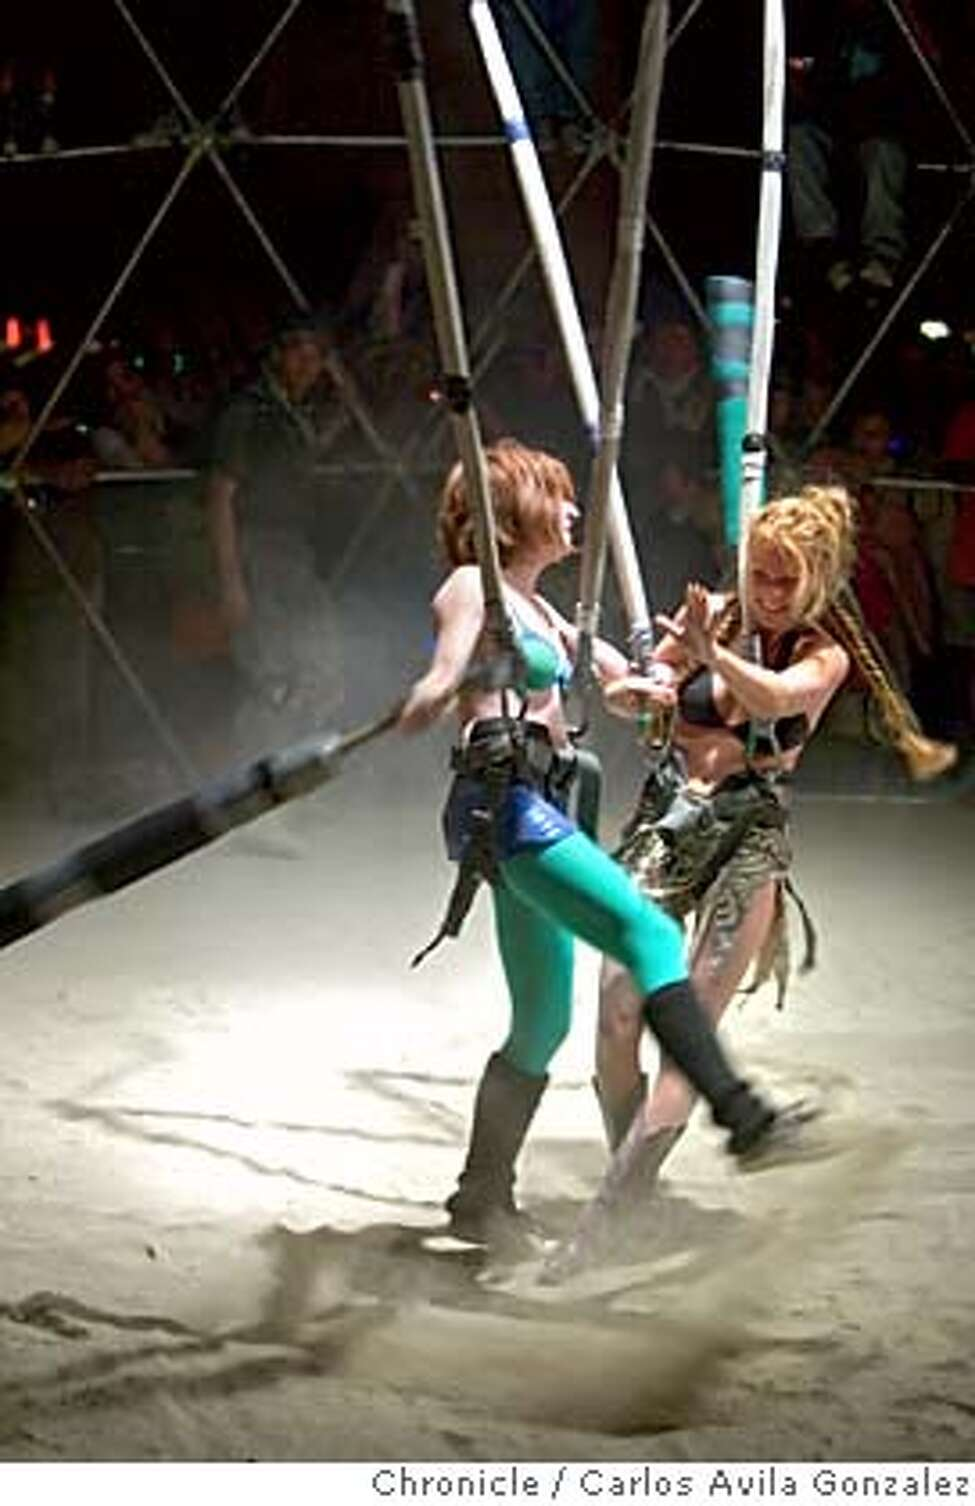 Two Burning Man participants do battle in the Thunderdome on Saturday, September 2, 2006. The look and feel of the Burning Man Festival changes dramatically as day gives way to night. When the sun falls, the art and flare of the Playa become louder, brighter, and more intense as even the participants' behavior changes to match. Daily coverage of the Burning Man festival in the Nevada desert. Photo by Carlos Avila Gonzalez/The San Francisco Chronicle Photo taken on 9/3/06, in Black Rock City, Nv, USA **All names cq (source)